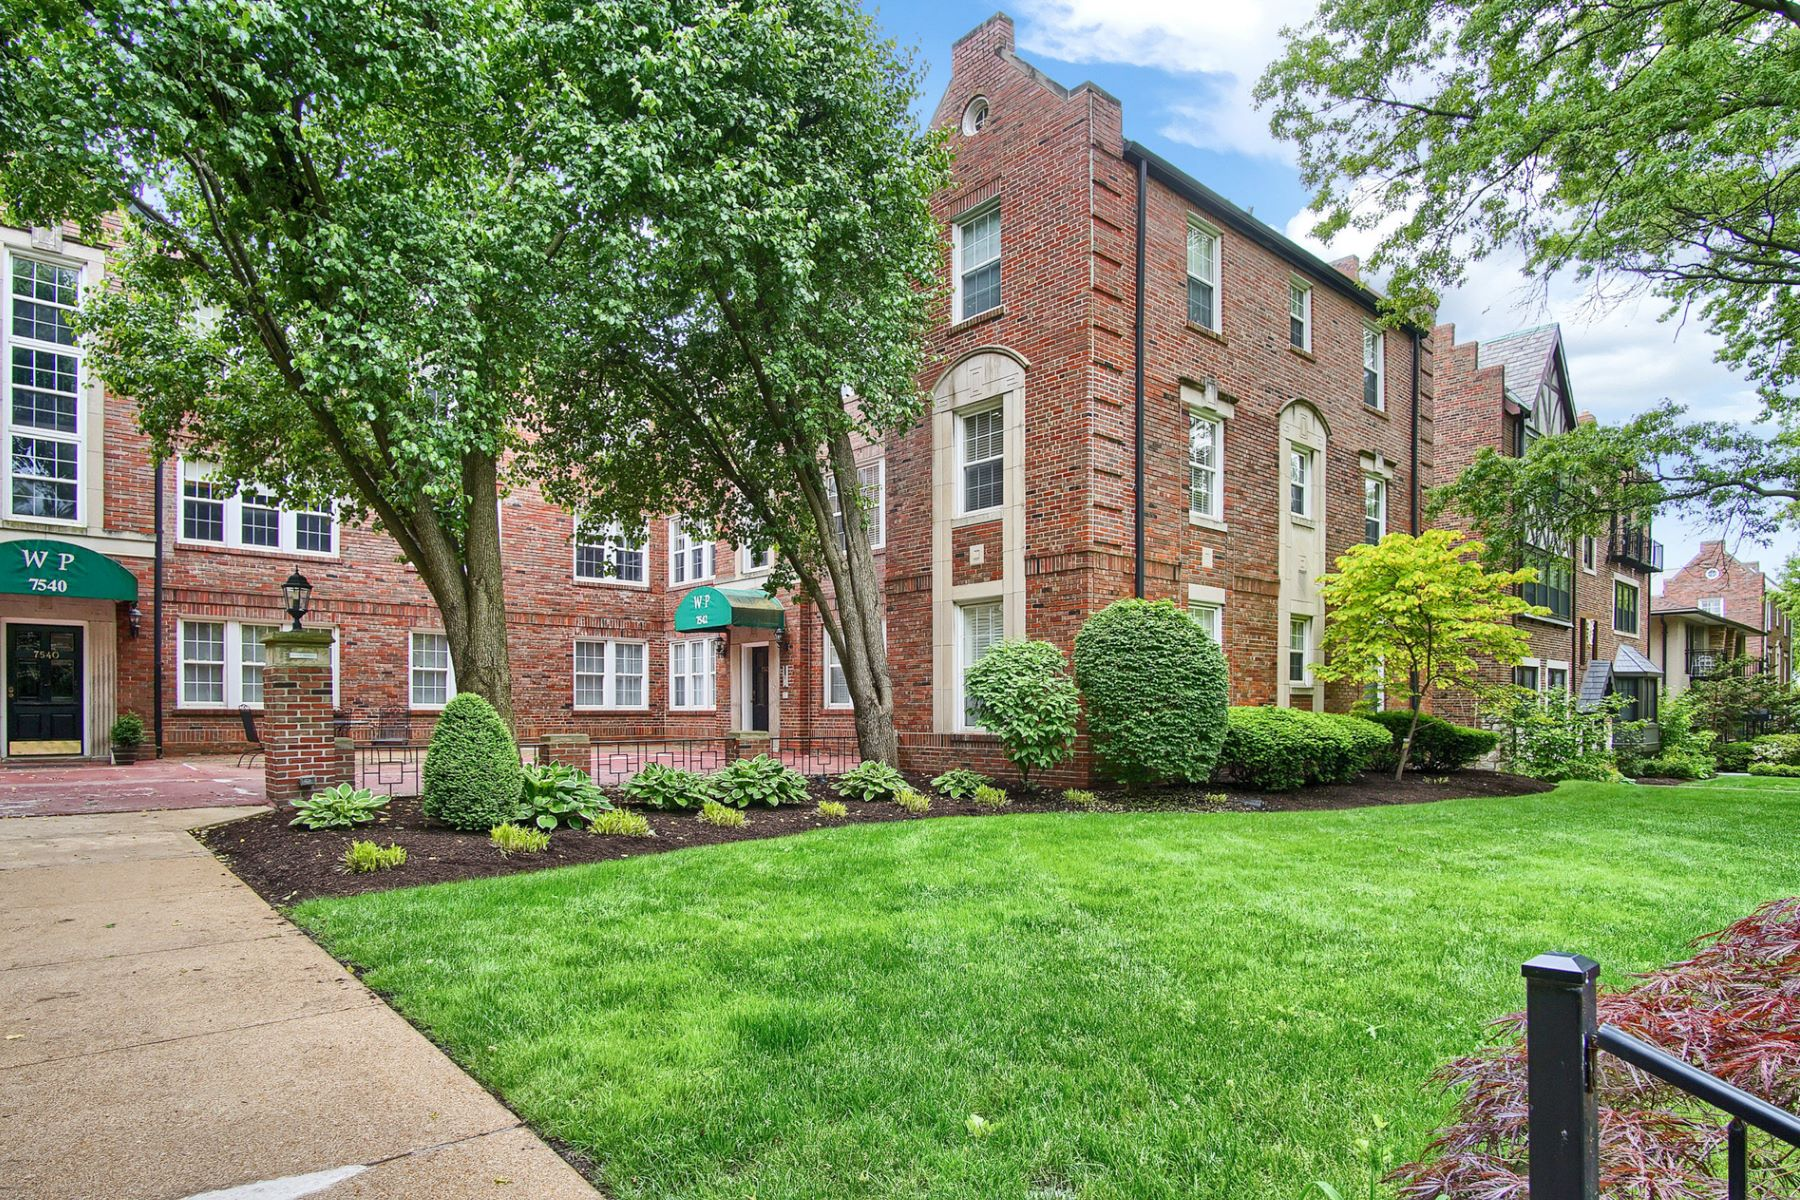 Property for Rent at Charming Garden Apartment 7542 Wydown Boulevard #B St. Louis, Missouri 63105 United States